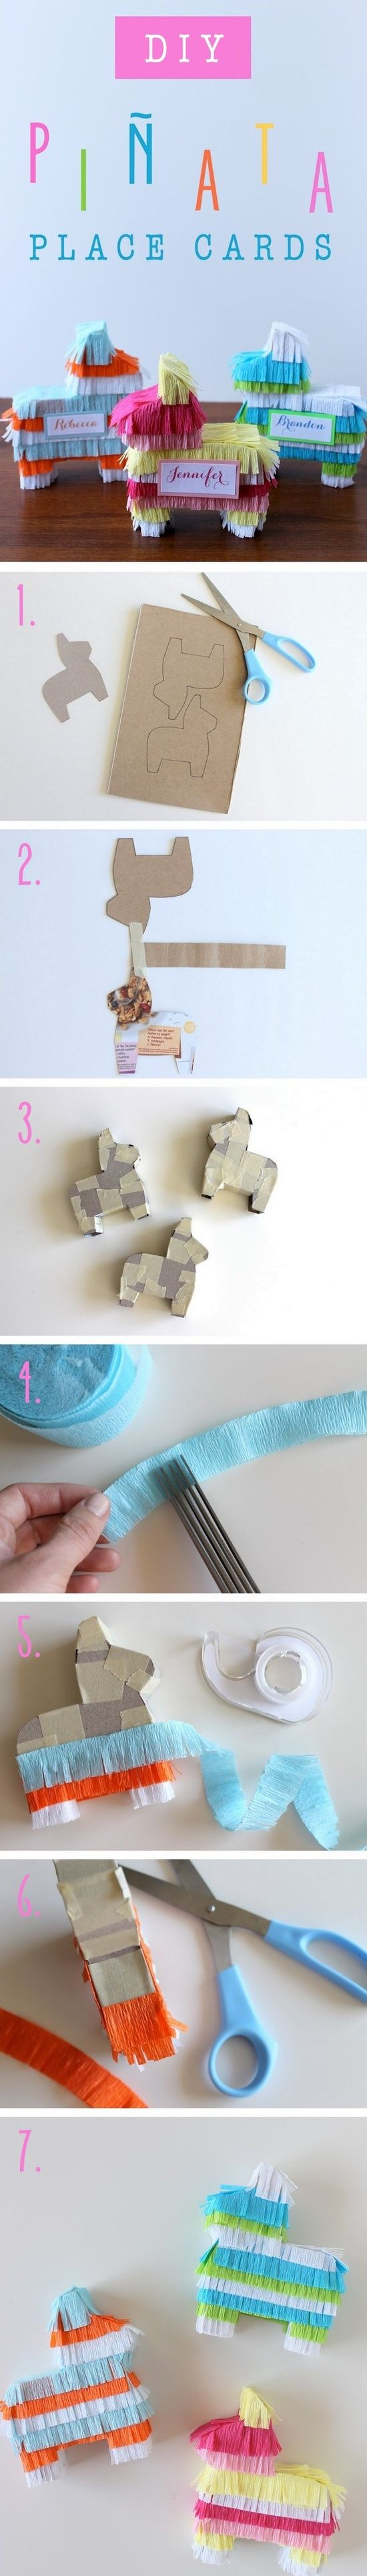 Diy Piñata Place Cards...could Fill With Treats And Use As A Cute Party Give Away